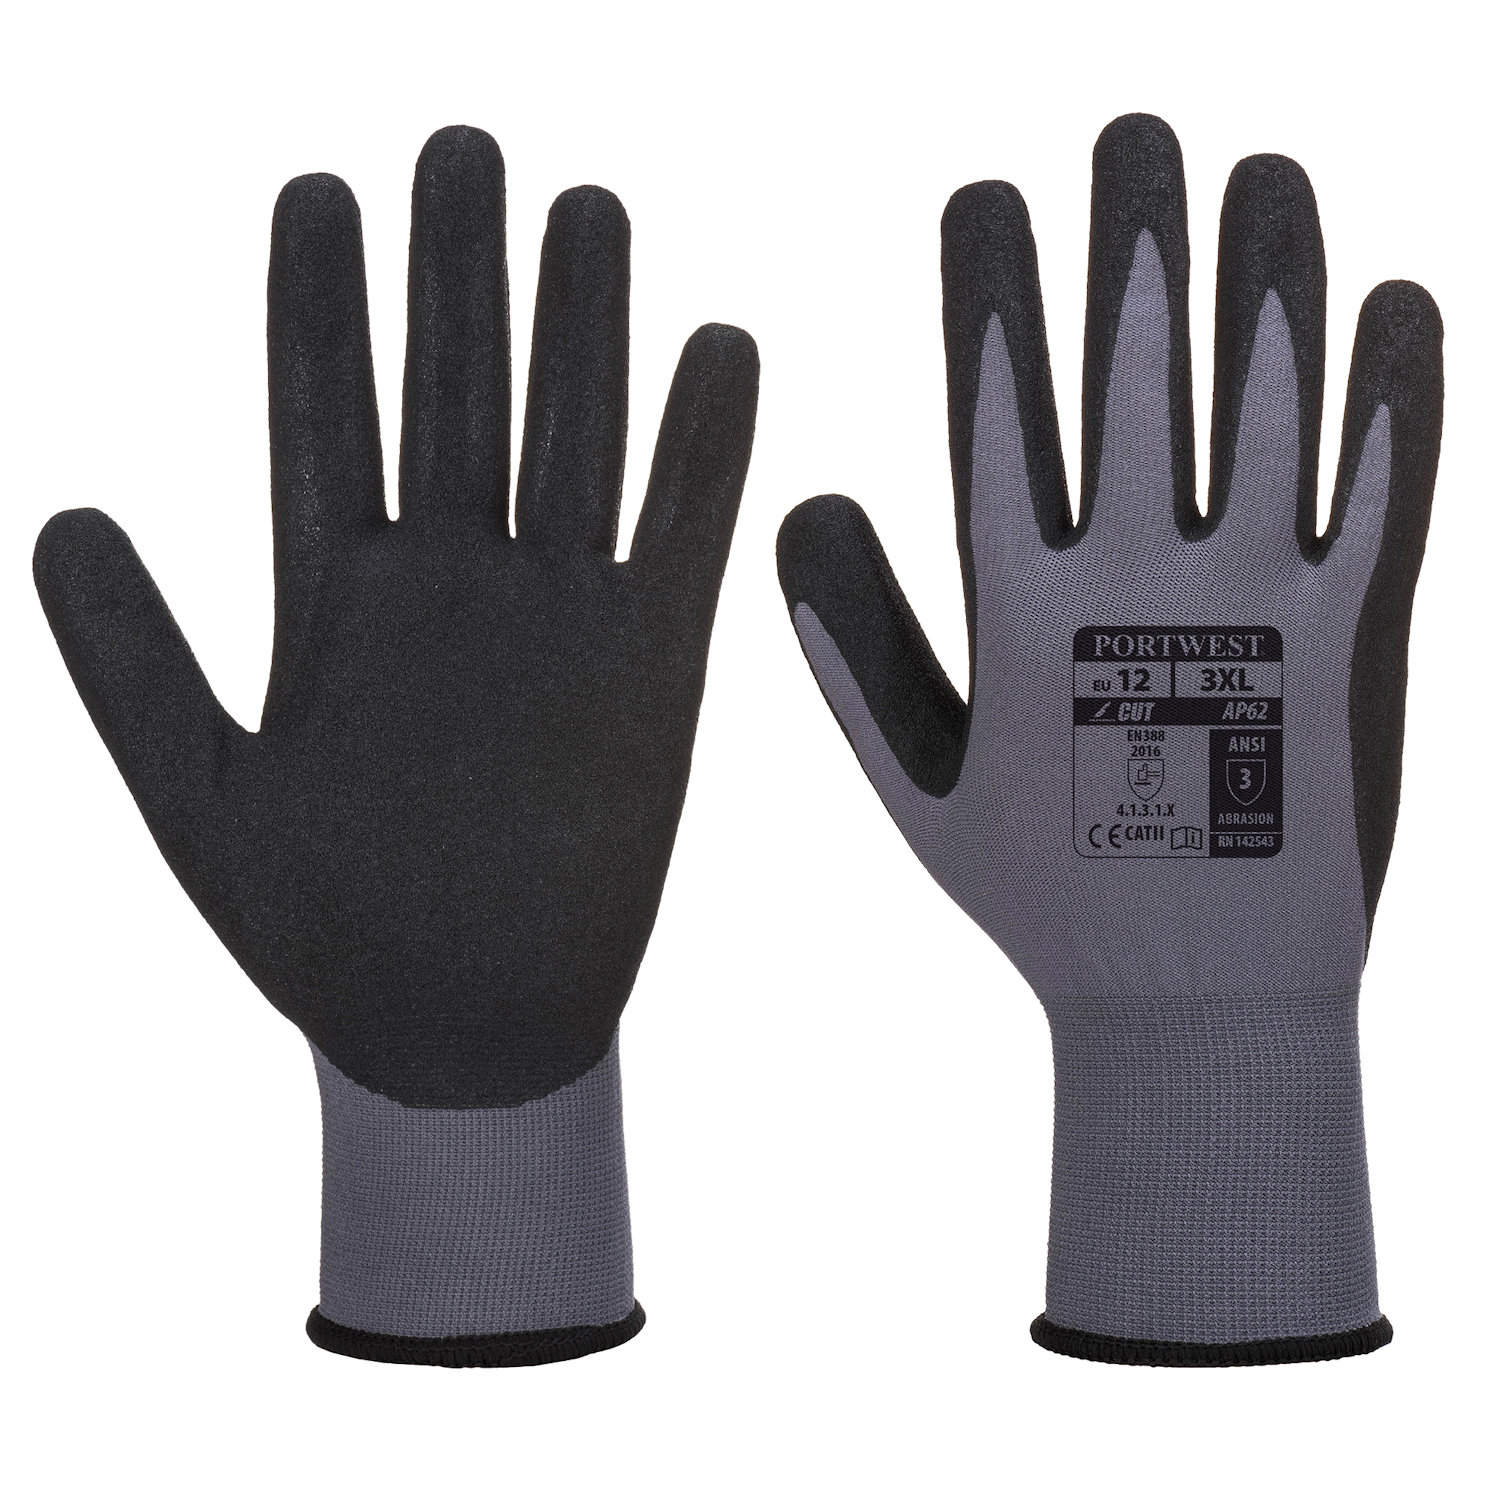 portwest ap62 gloves